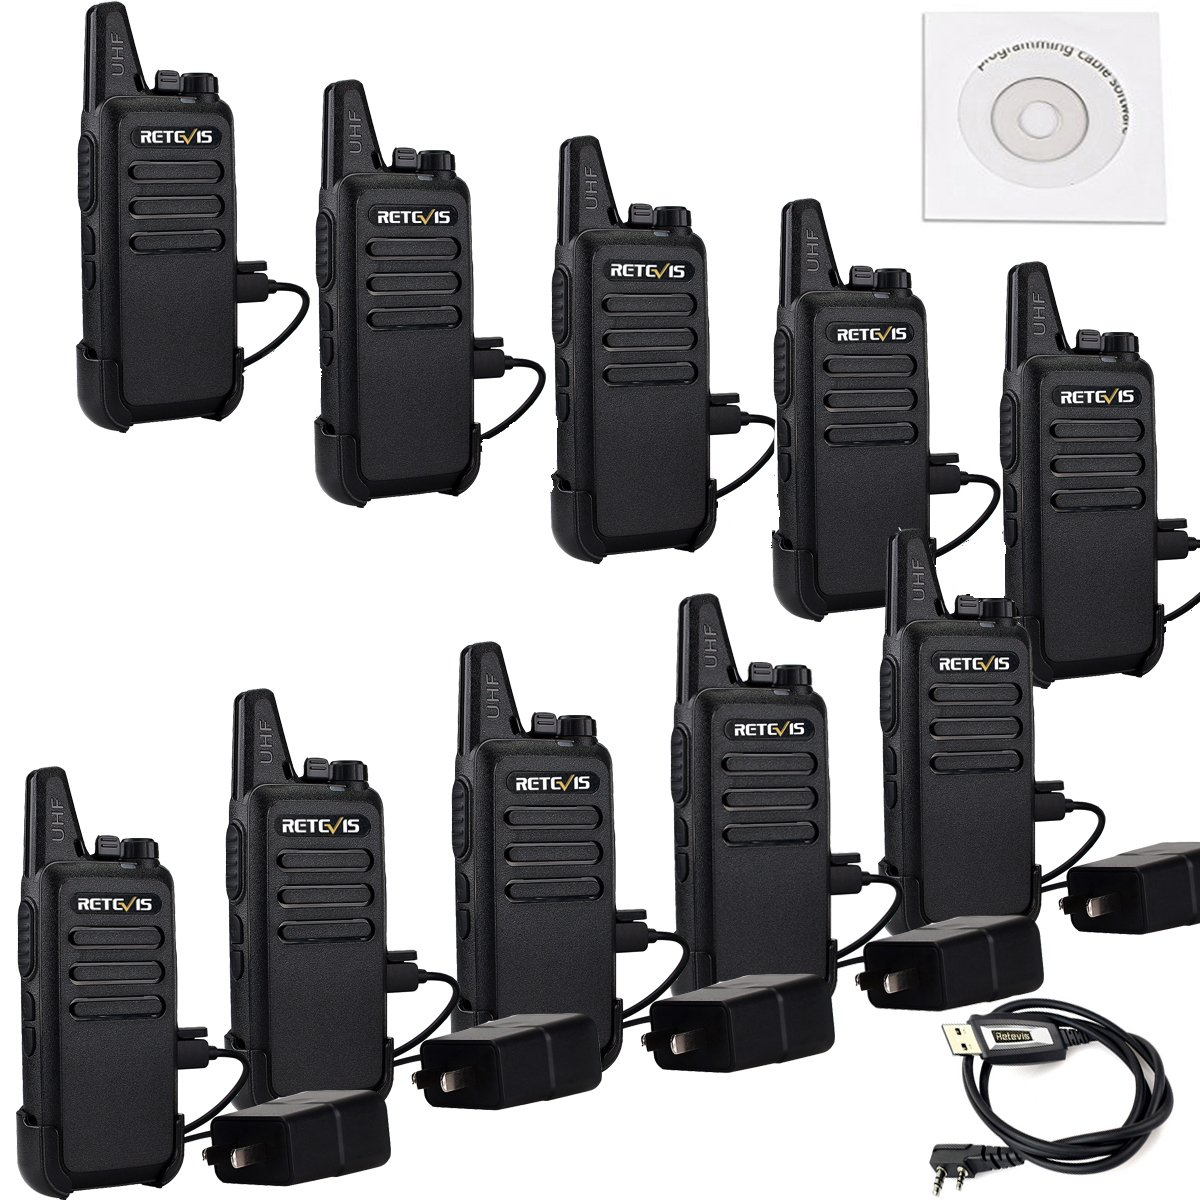 Retevis RT22 Two Way Radio 16 CH VOX 400-480MHz CTCSS/DCS Rechargeable Walkie Talkies(10 Pack) and Programming Cable by Retevis